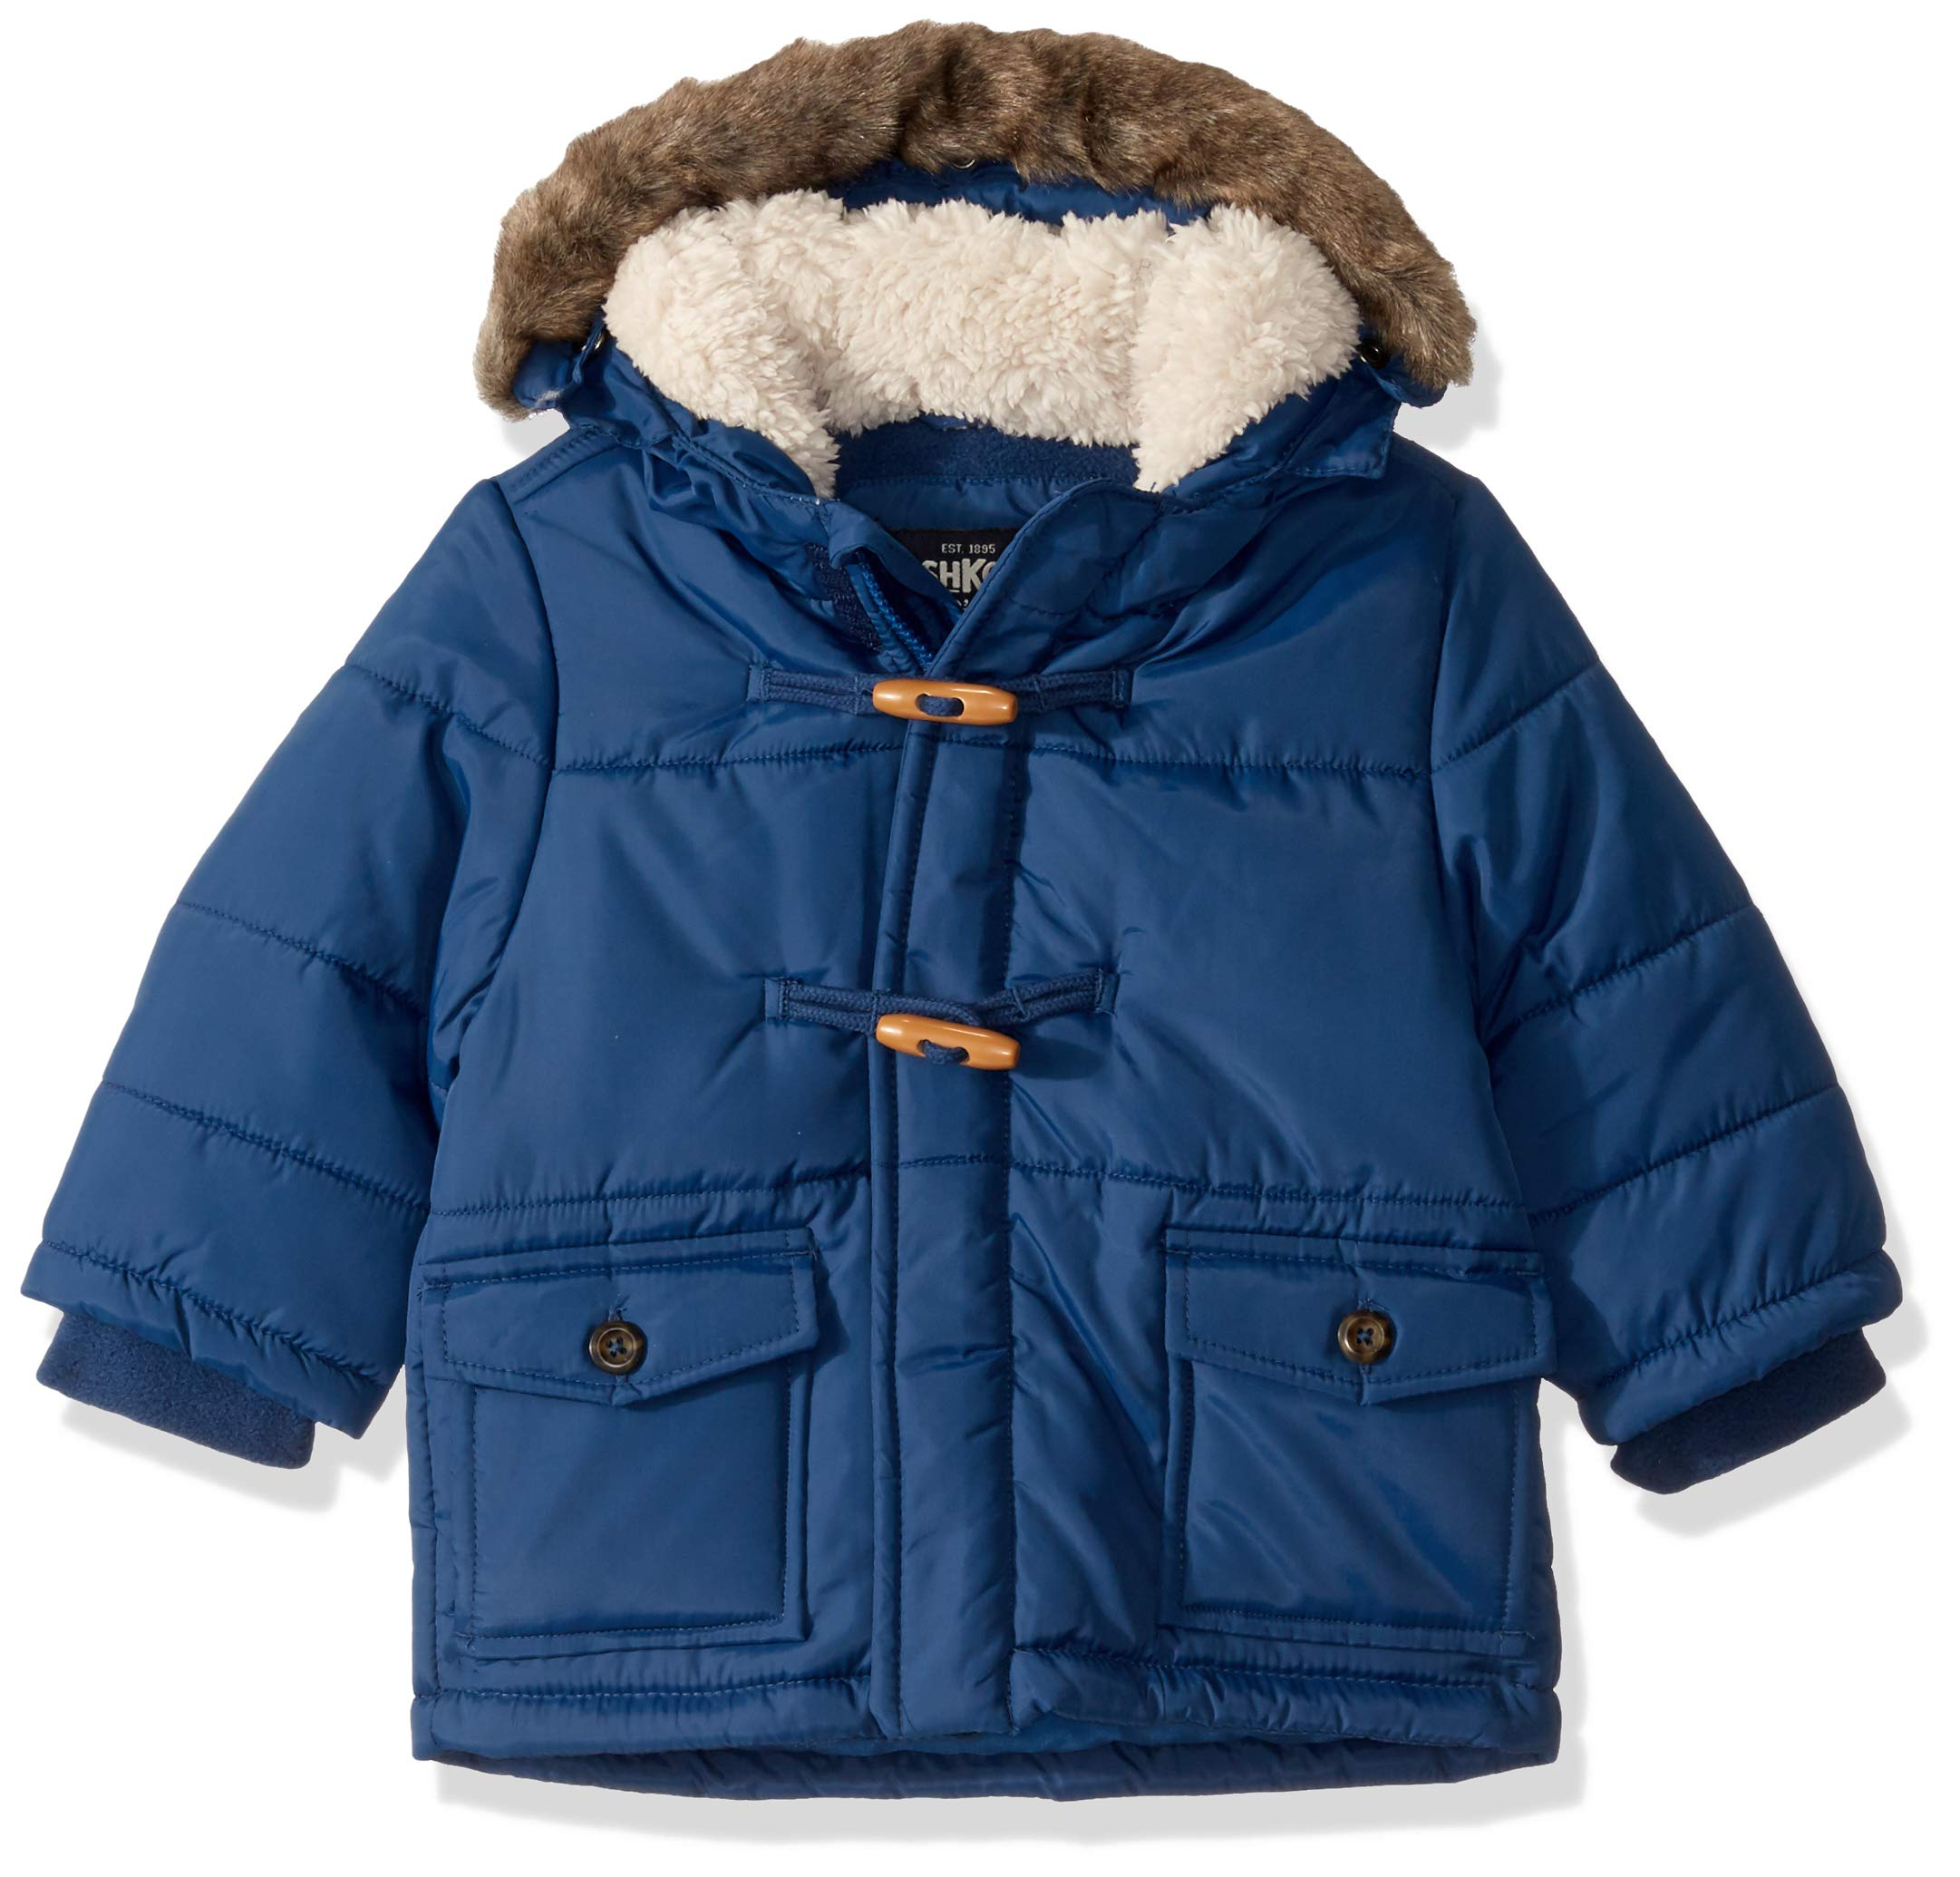 Osh Kosh Baby Boys Heavyweight Winter Jacket W/Hood Trim, Denim Daze, 24Mo by OshKosh B'Gosh